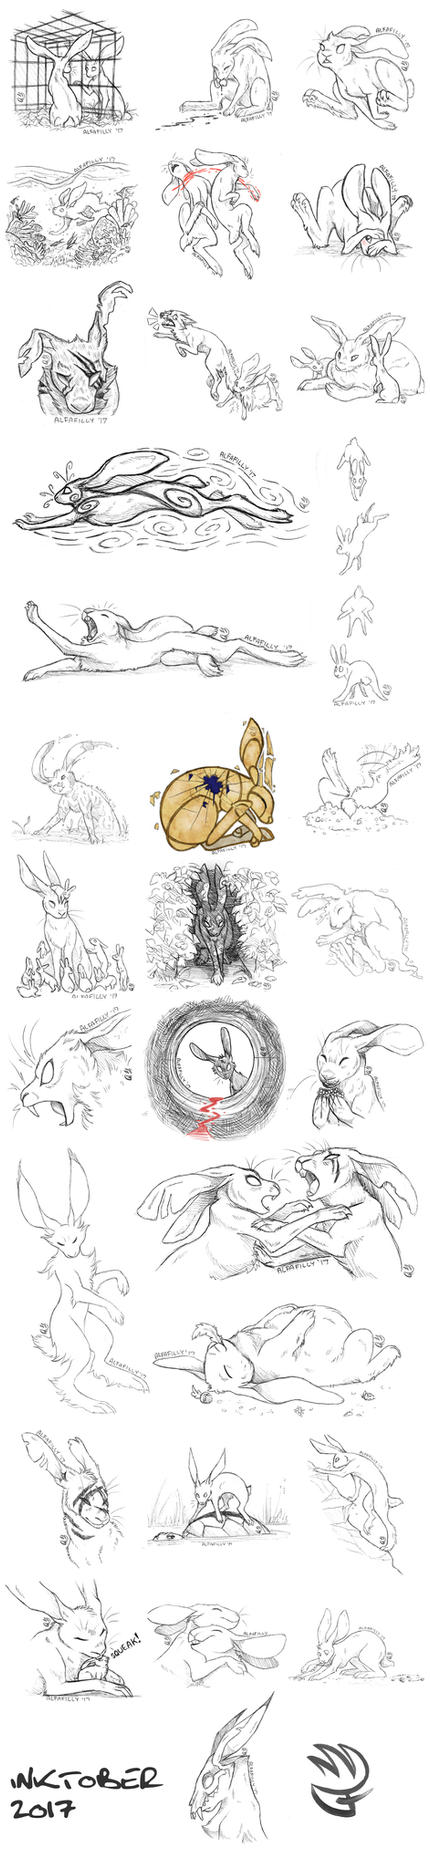 Inktober 2017: HARE SERIES by AlfaFilly